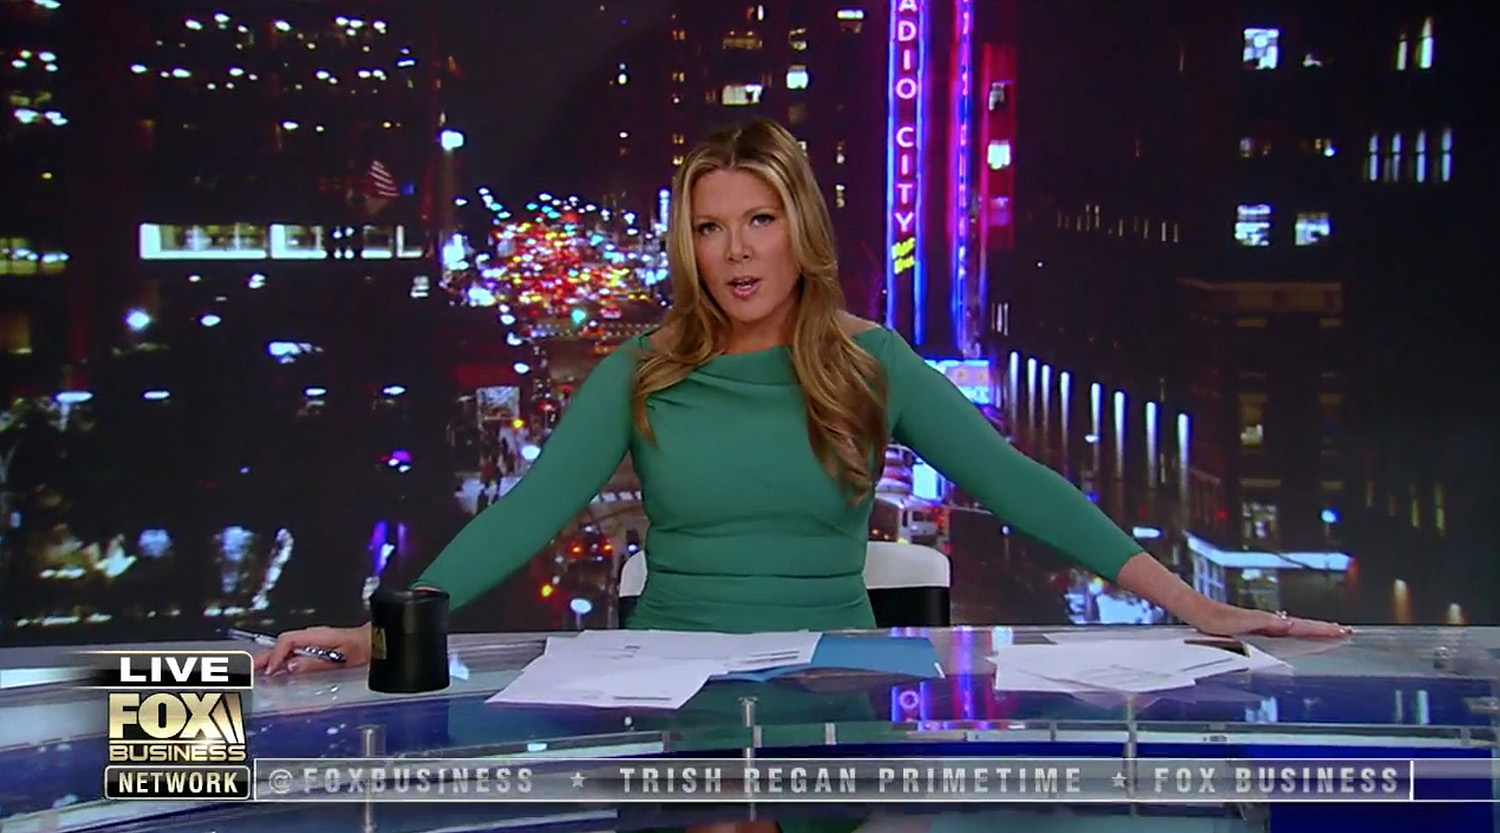 NCS_Fox-Business_Trish-Regan-Primetime-0002